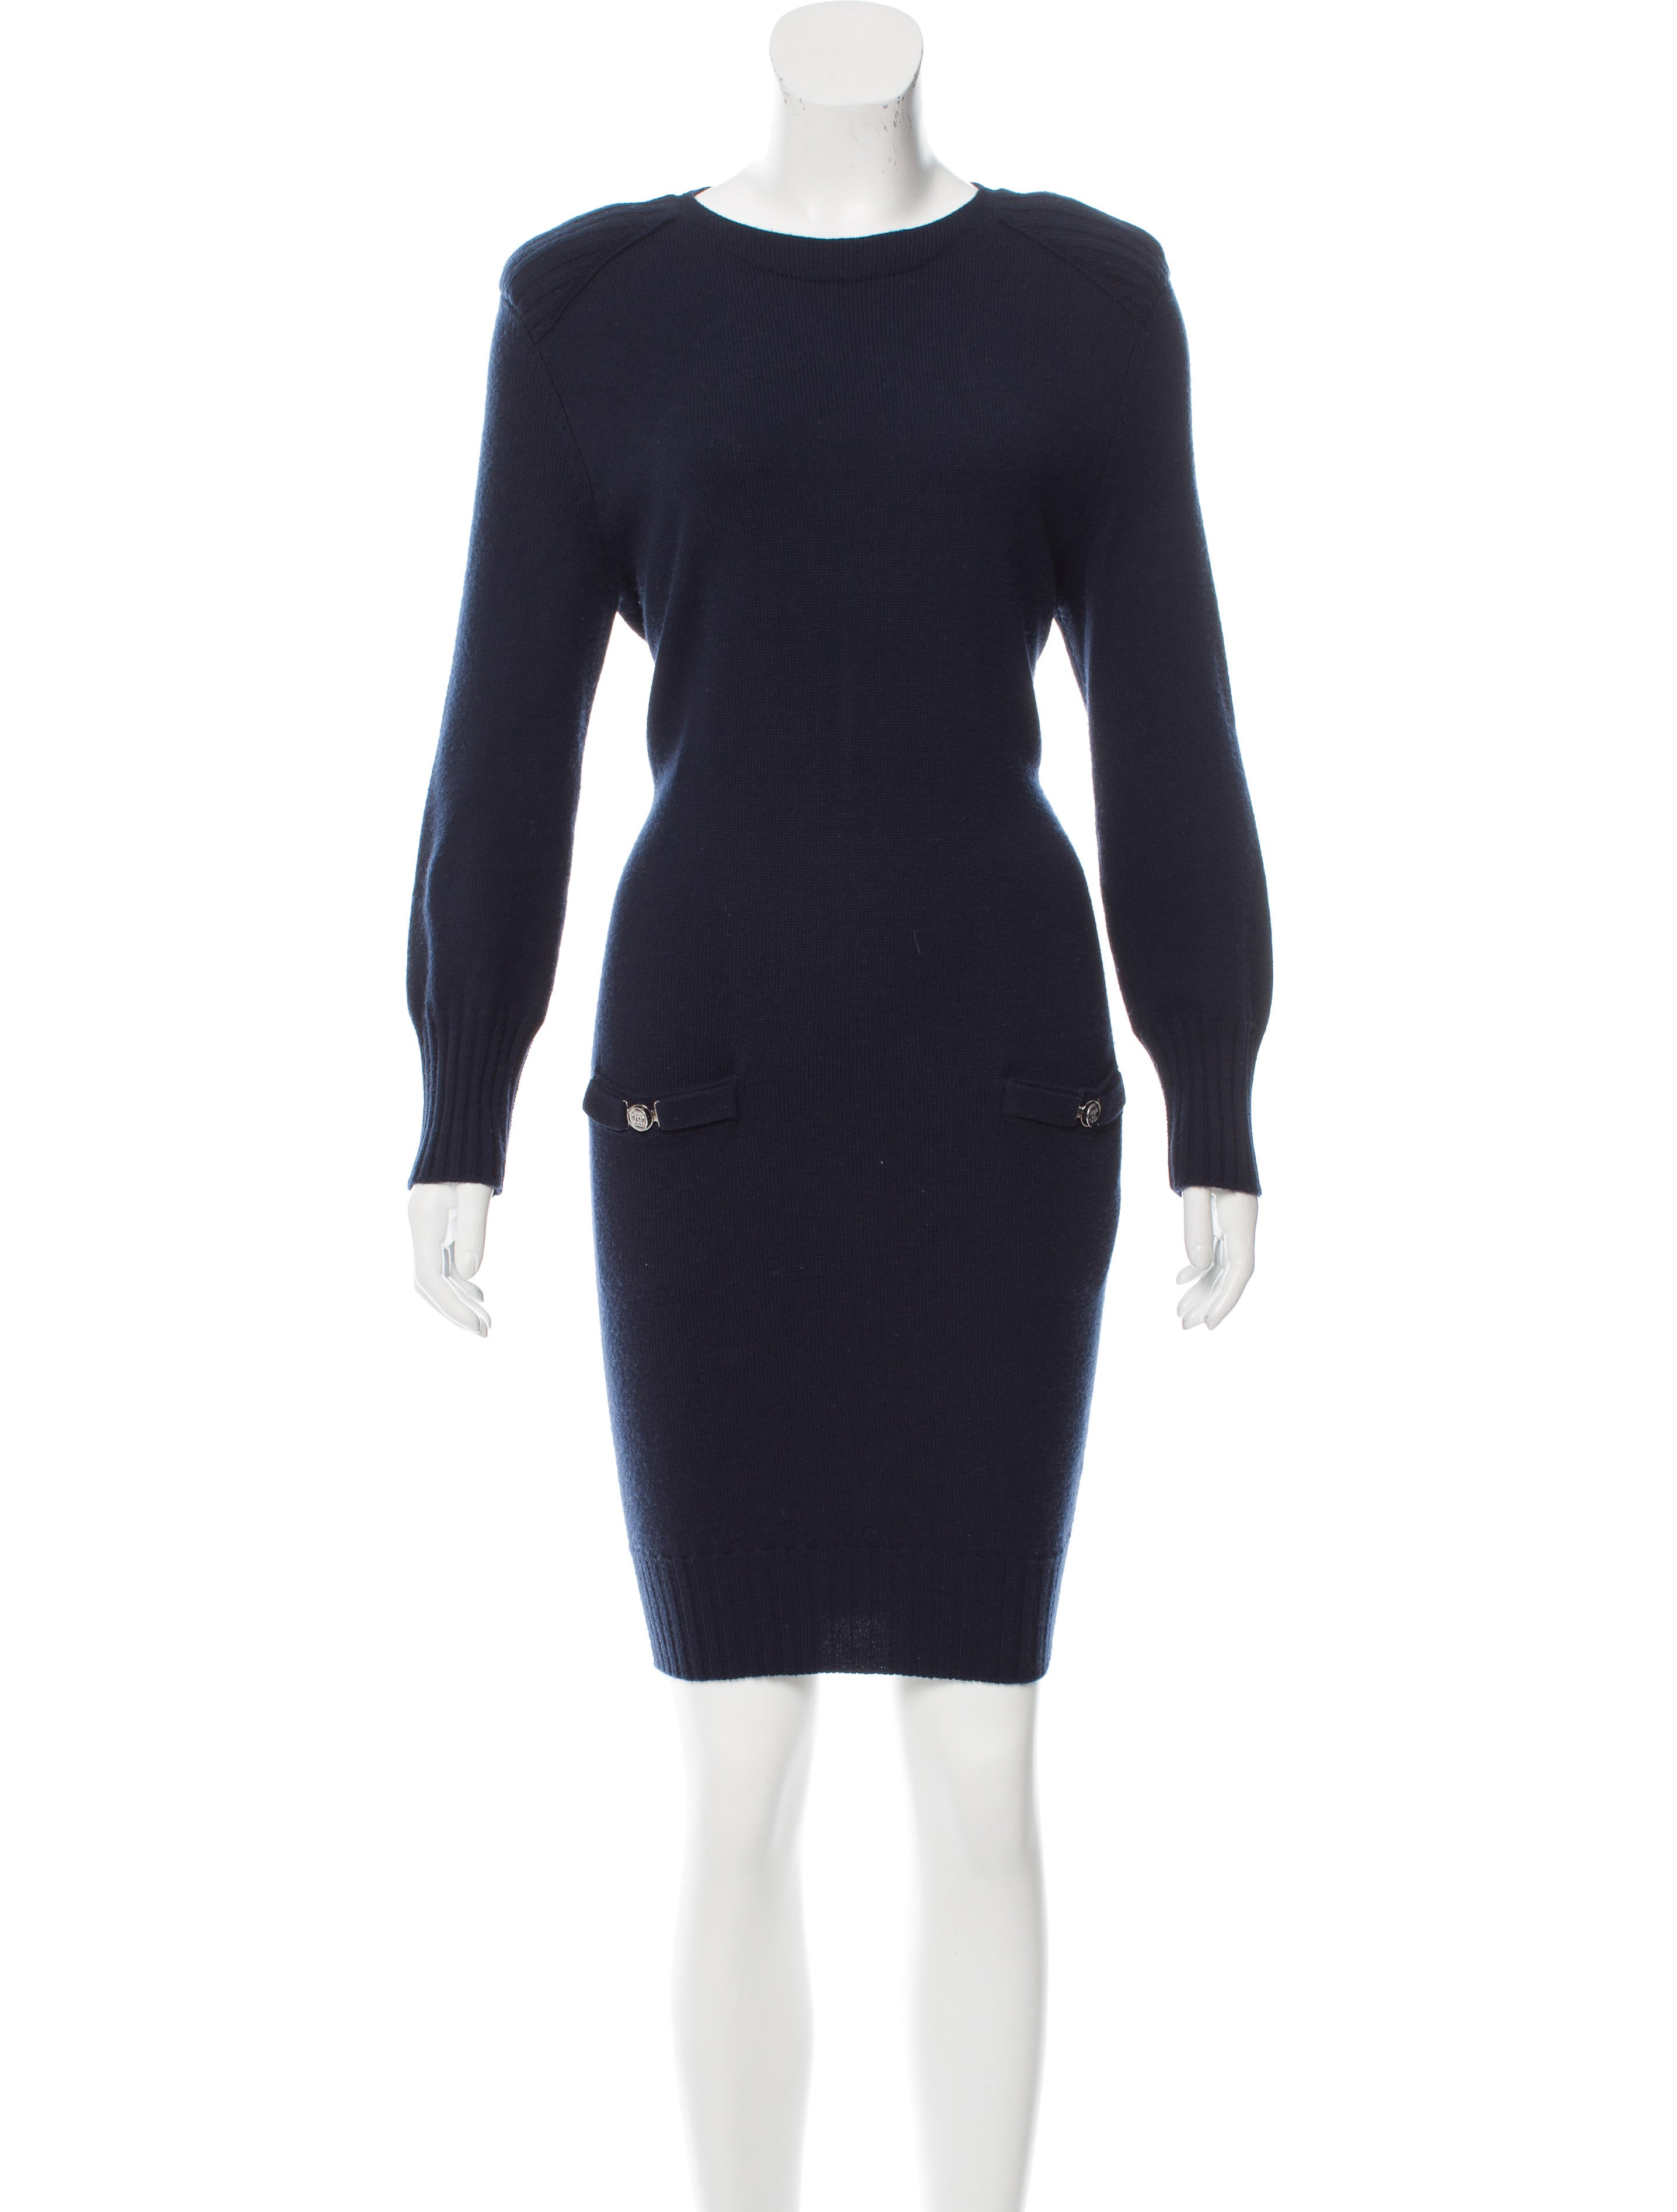 Chanel Wool Sweater Dress - Clothing - CHA173184 | The RealReal